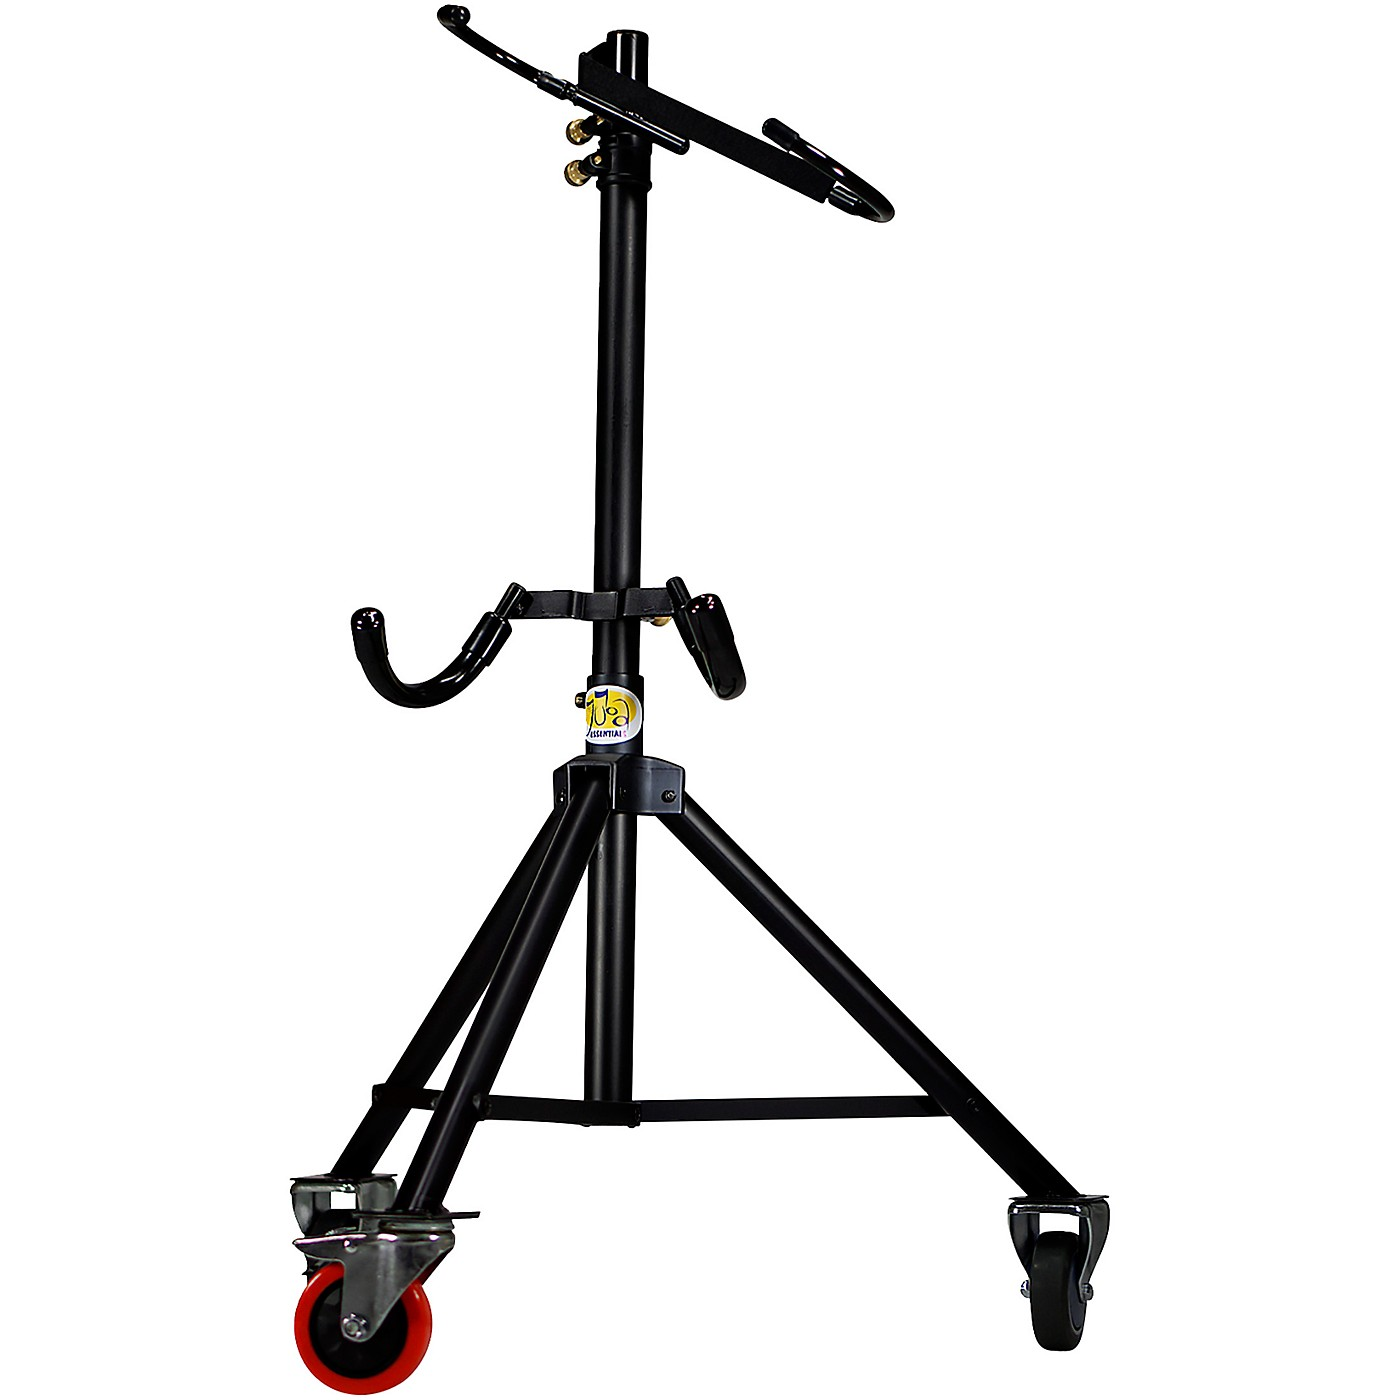 Tuba Essentials The Hug Adjustable Tuba Stand for Full-Size Right Side Mouthpiece Instruments thumbnail